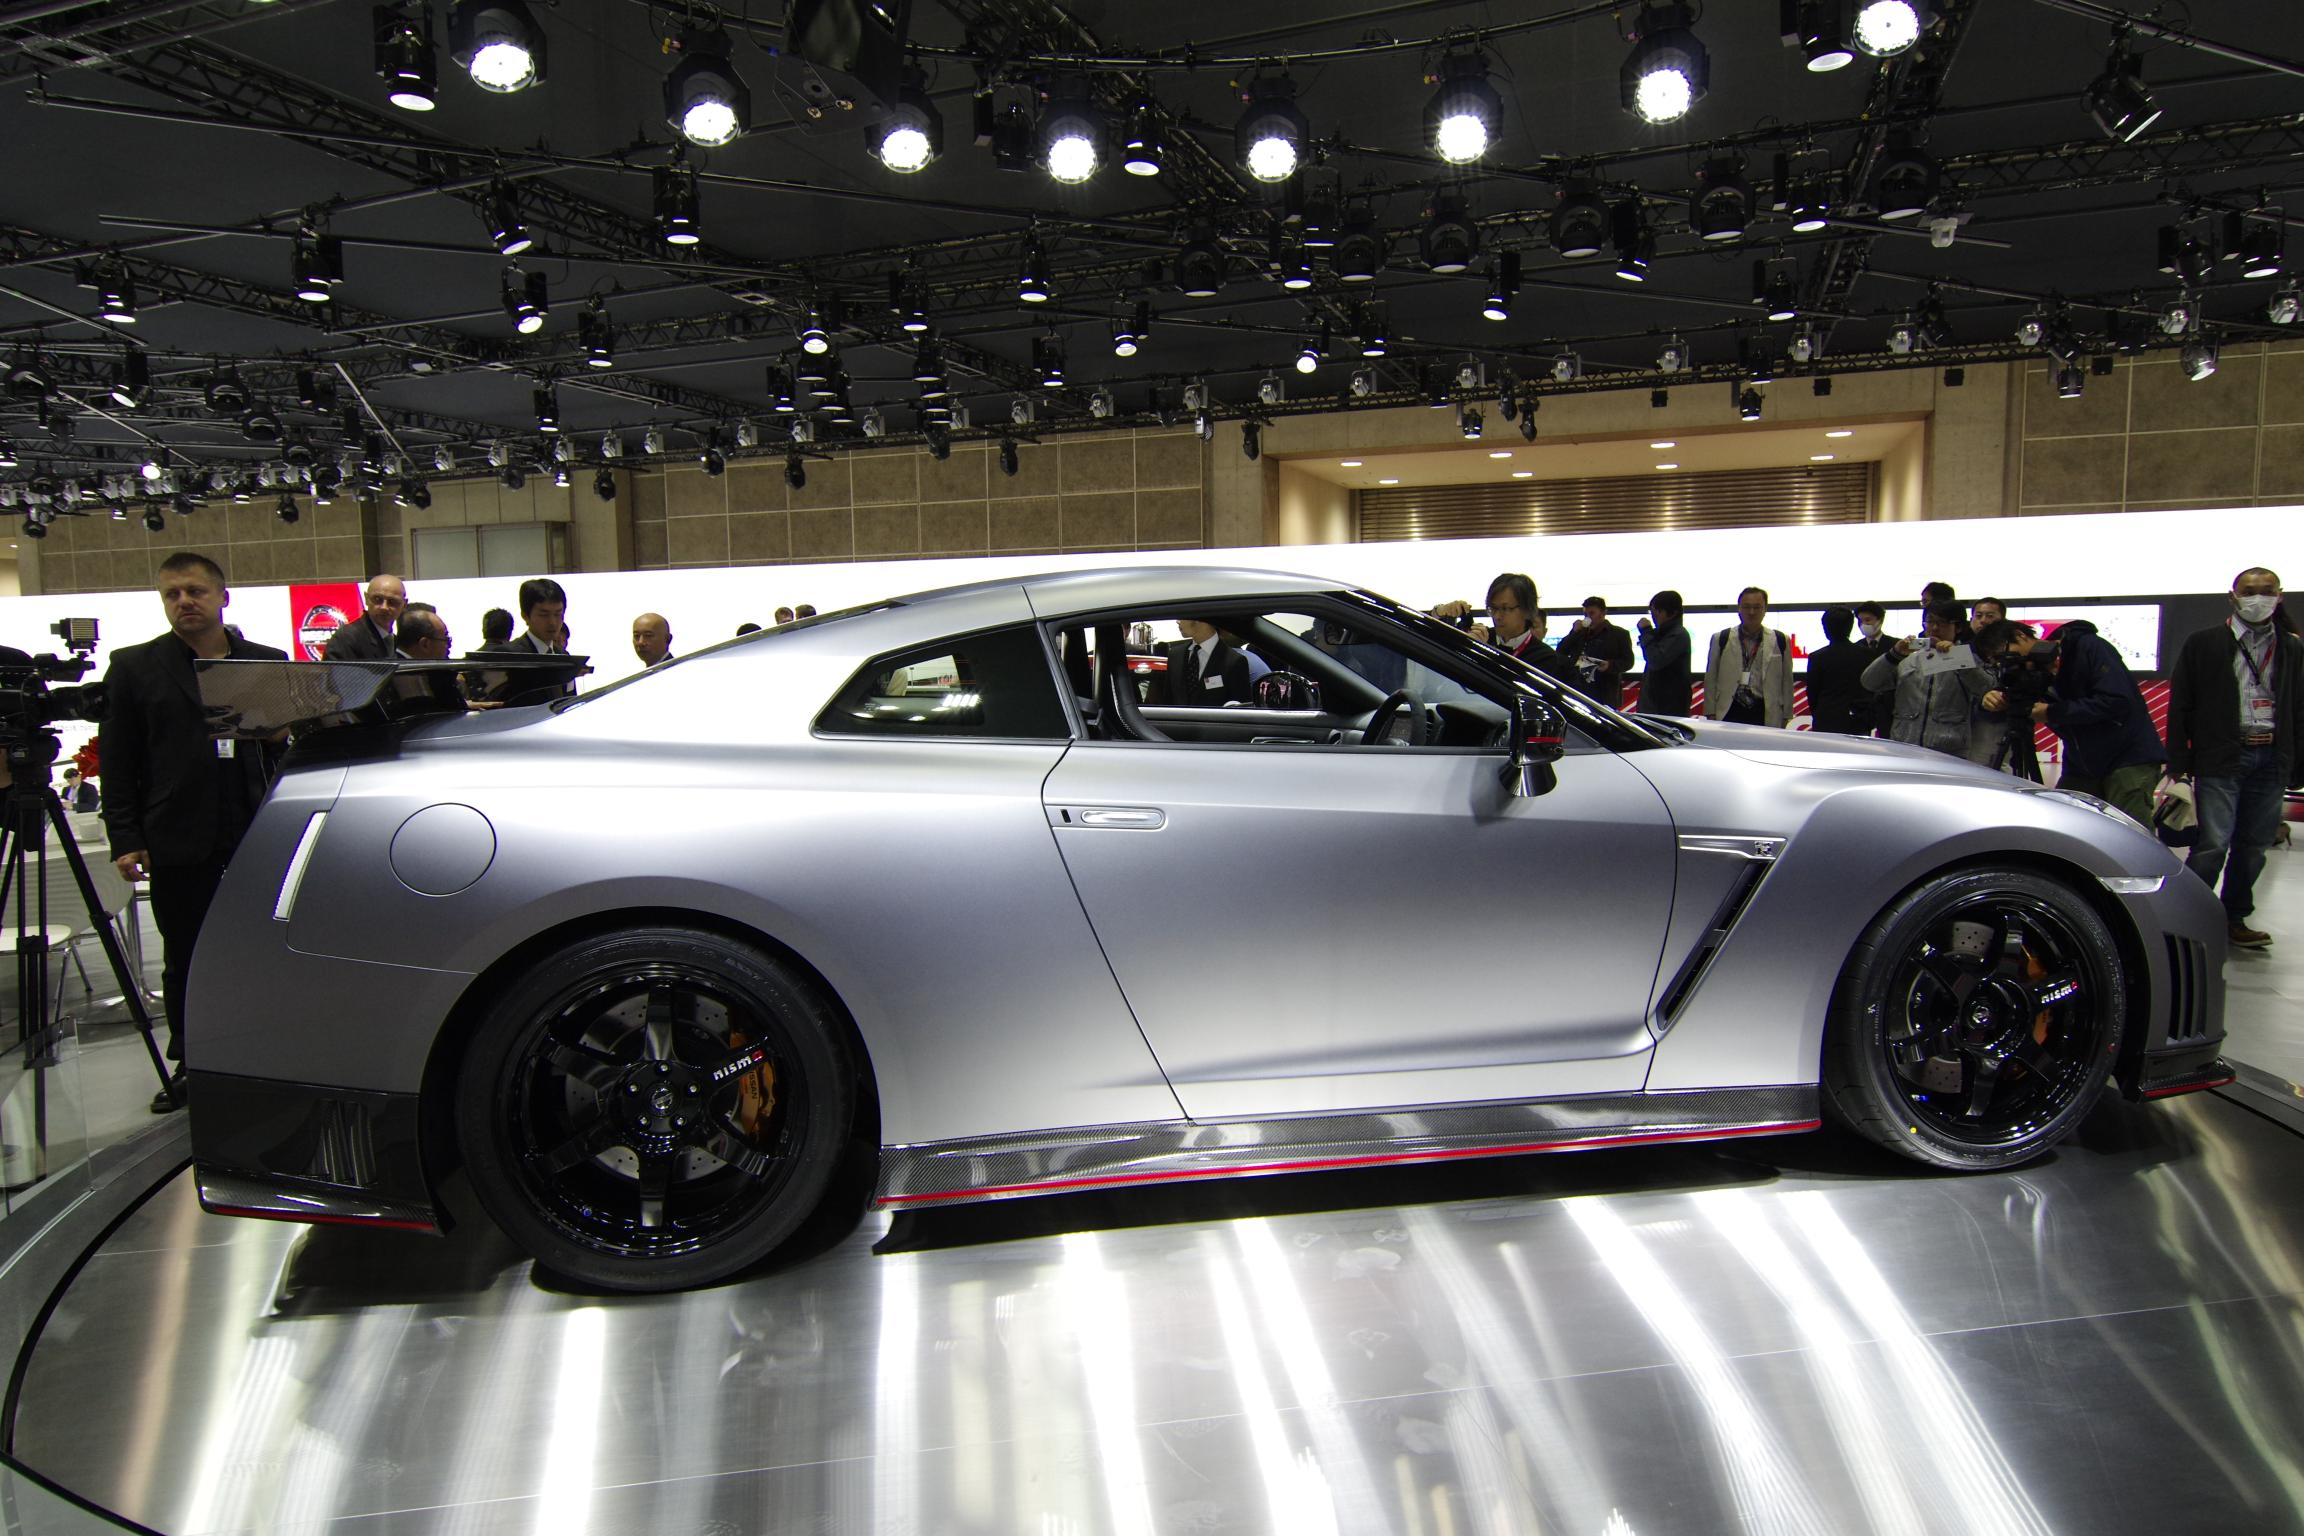 Shahzad S Review Of The 2013 Tokyo Motor Show Motoring